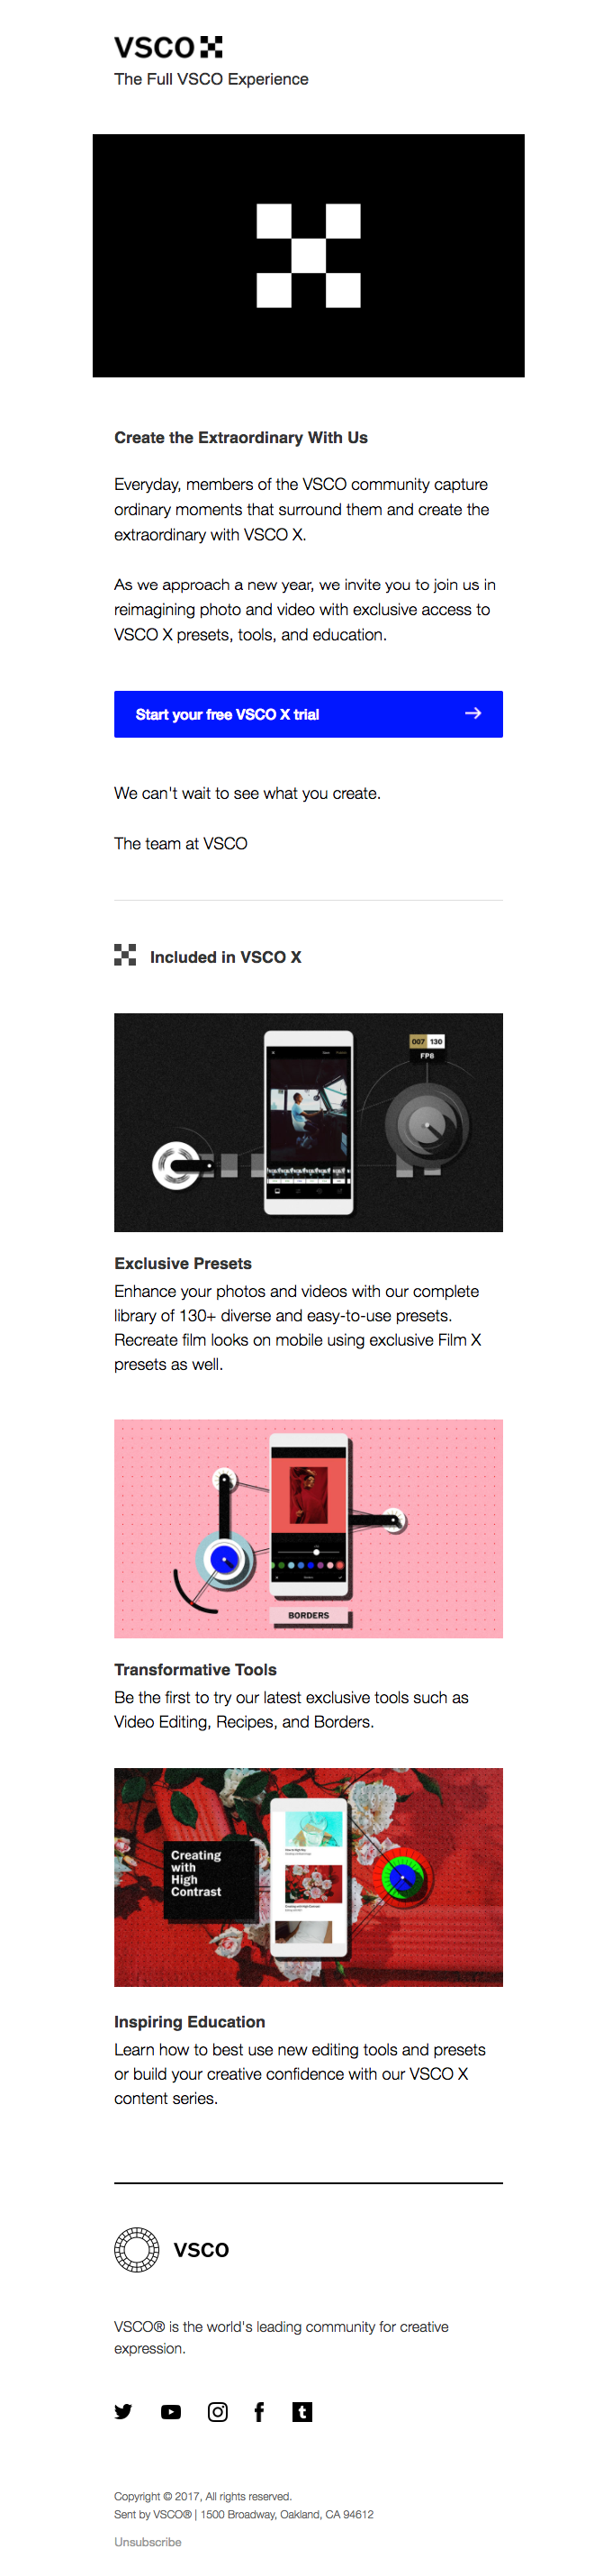 Your Free VSCO X Trial